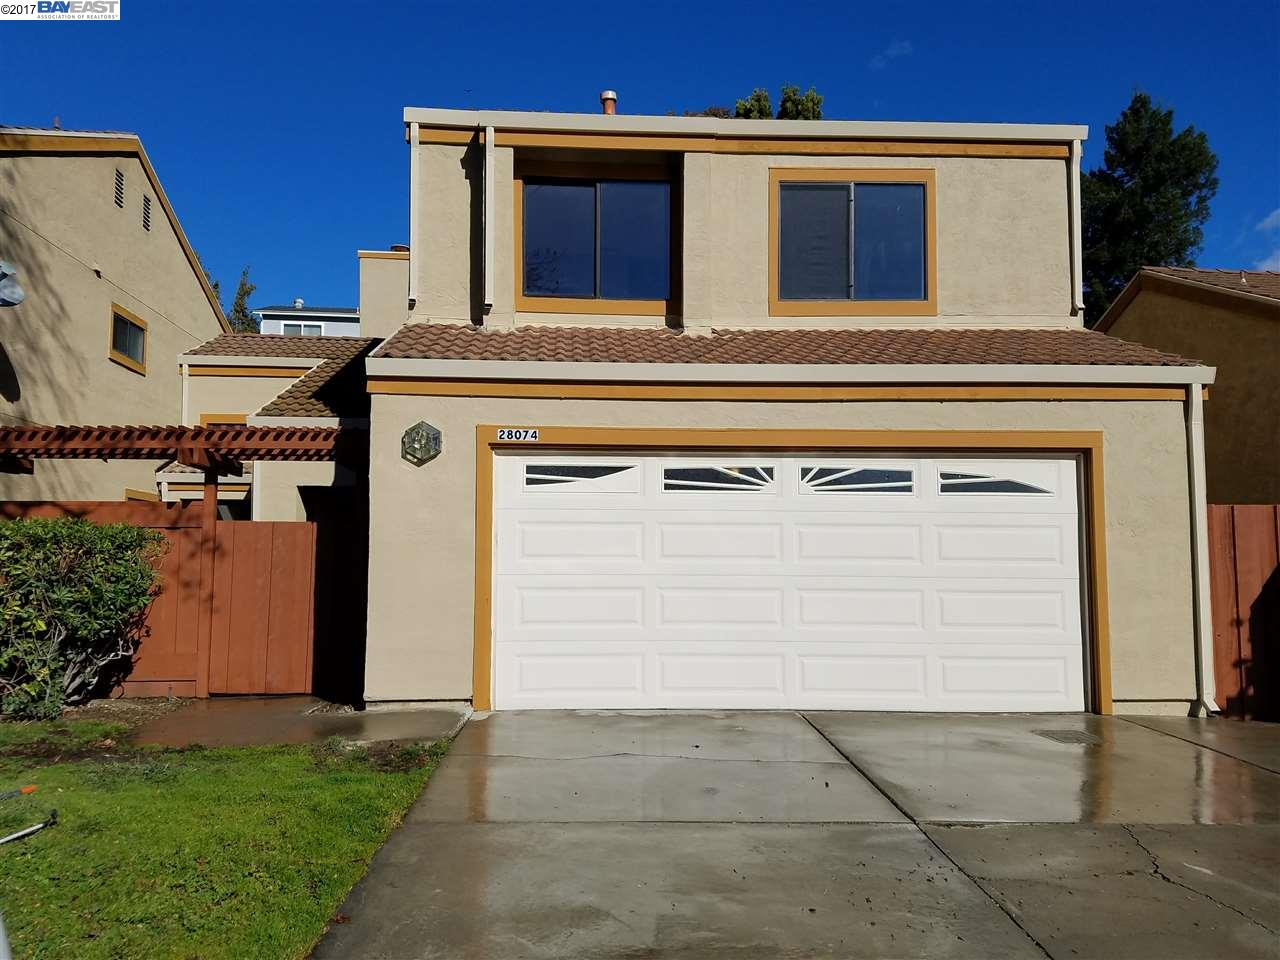 28074 Thorup | HAYWARD | 1705 | 94542-2439